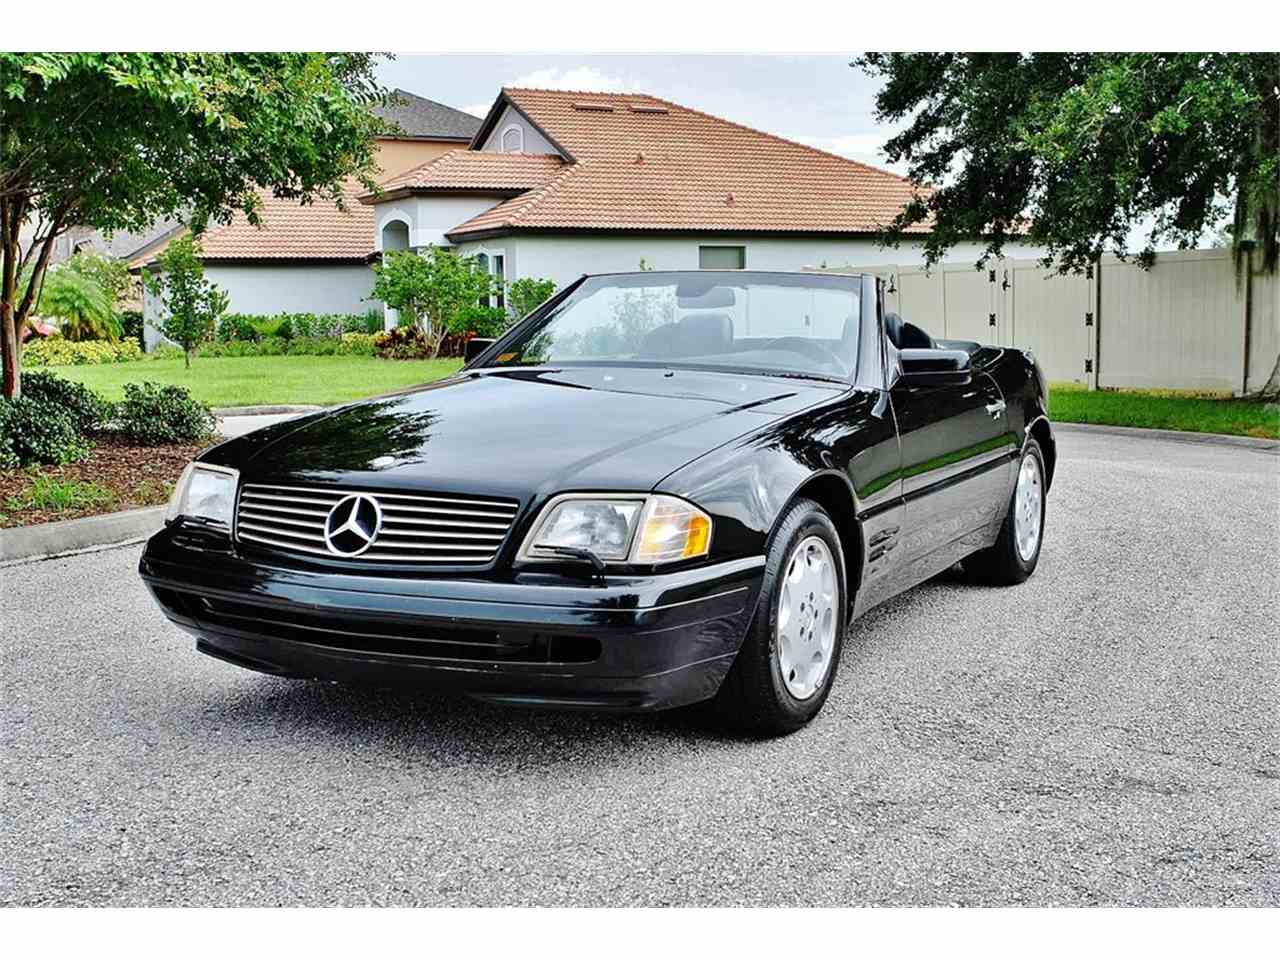 Large Picture of '97 Mercedes-Benz SL-Class located in Florida - $13,500.00 Offered by Primo Classic International LLC - KCTC